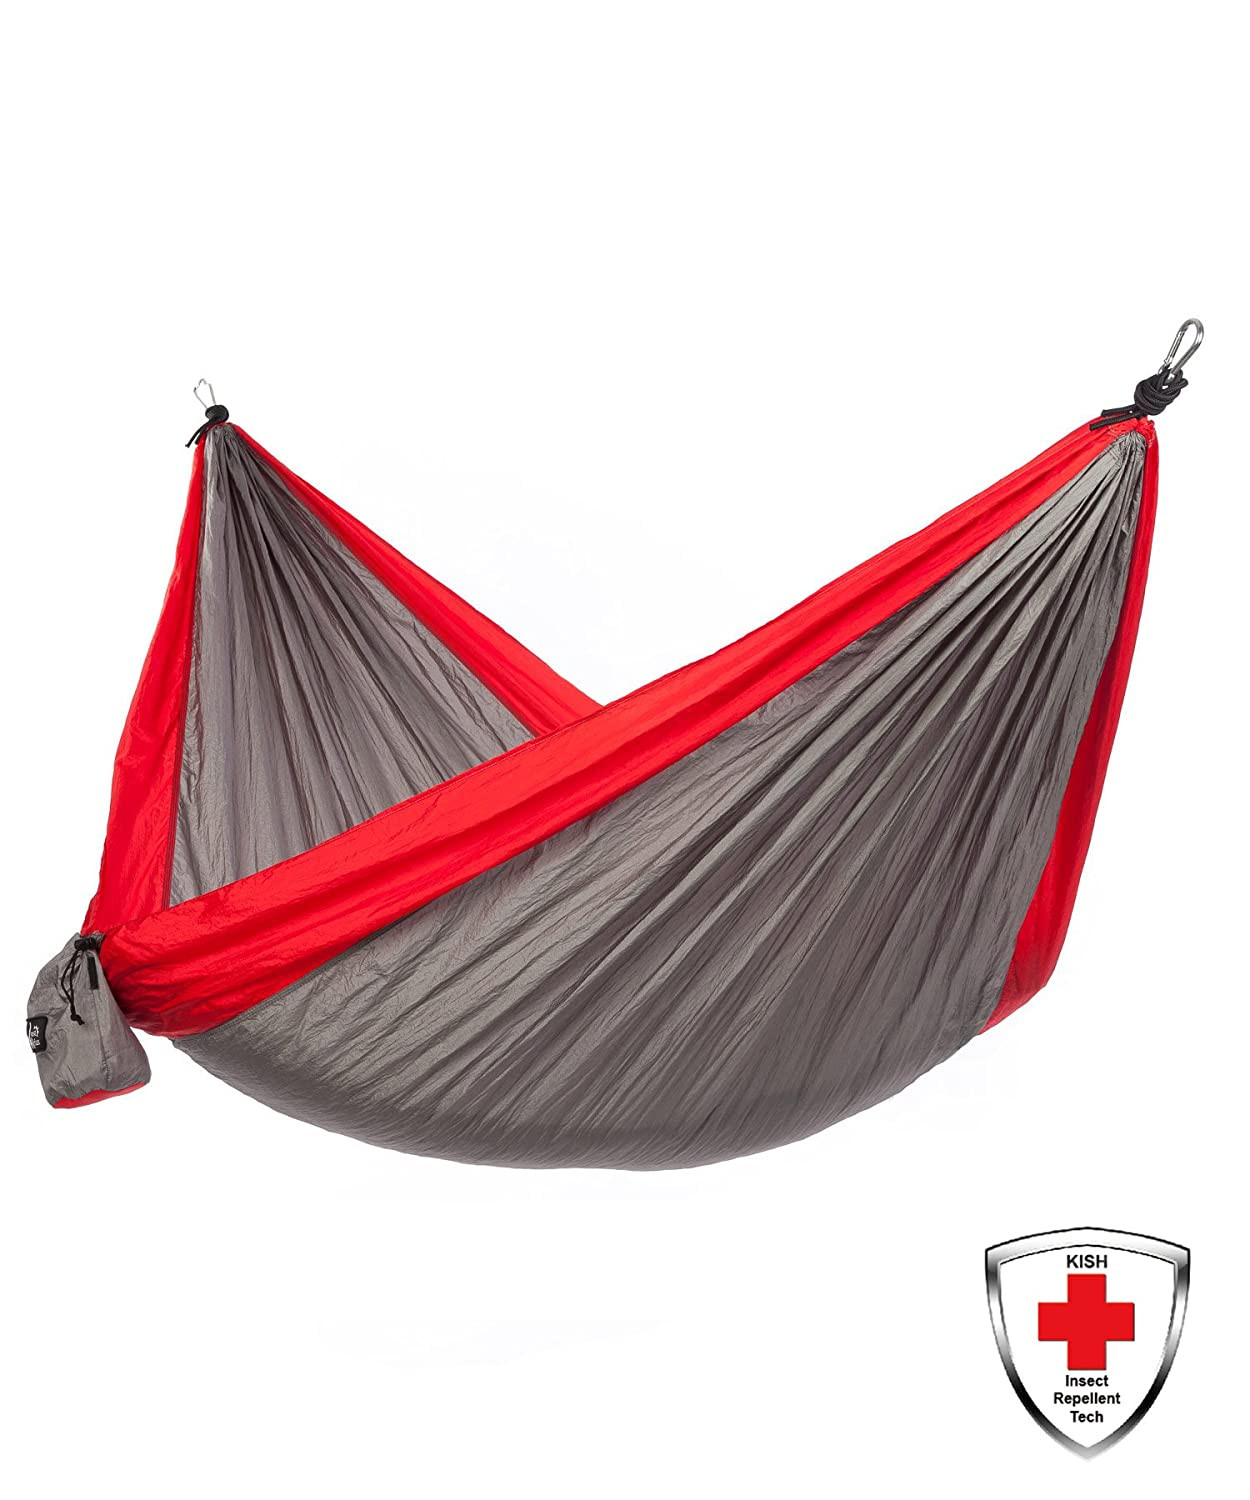 Just Relax Made with Kish Bug Repellent Double Portable Lightweight Camping Hammock, 10.6×6.6 Feet